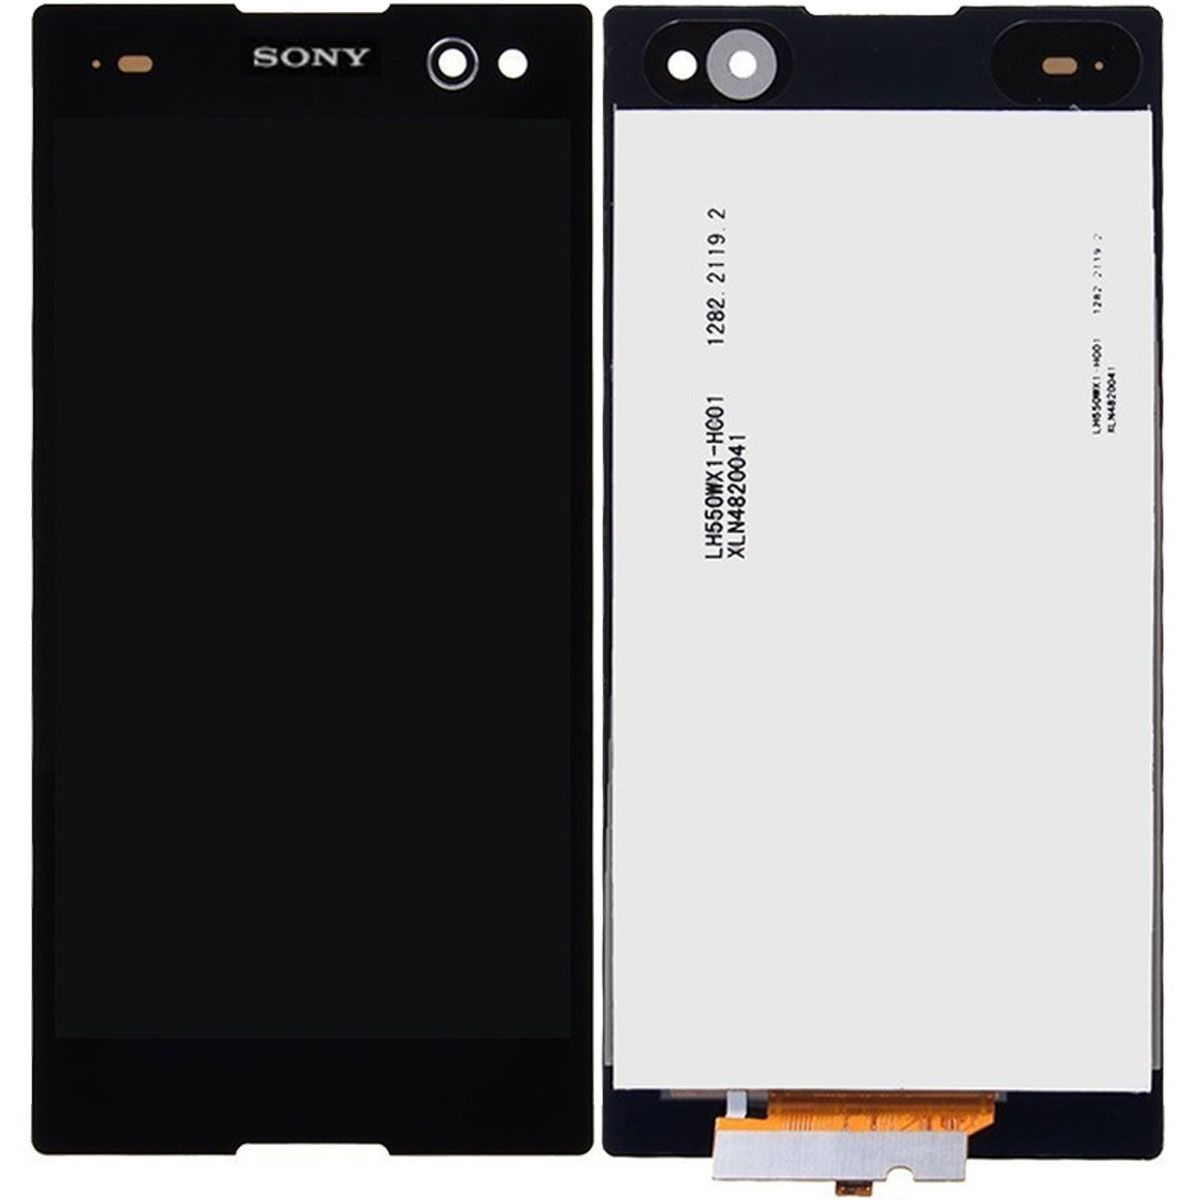 Frontal Tela Touch Display Lcd Sony Xperia C3 D2502 D2533 Preto